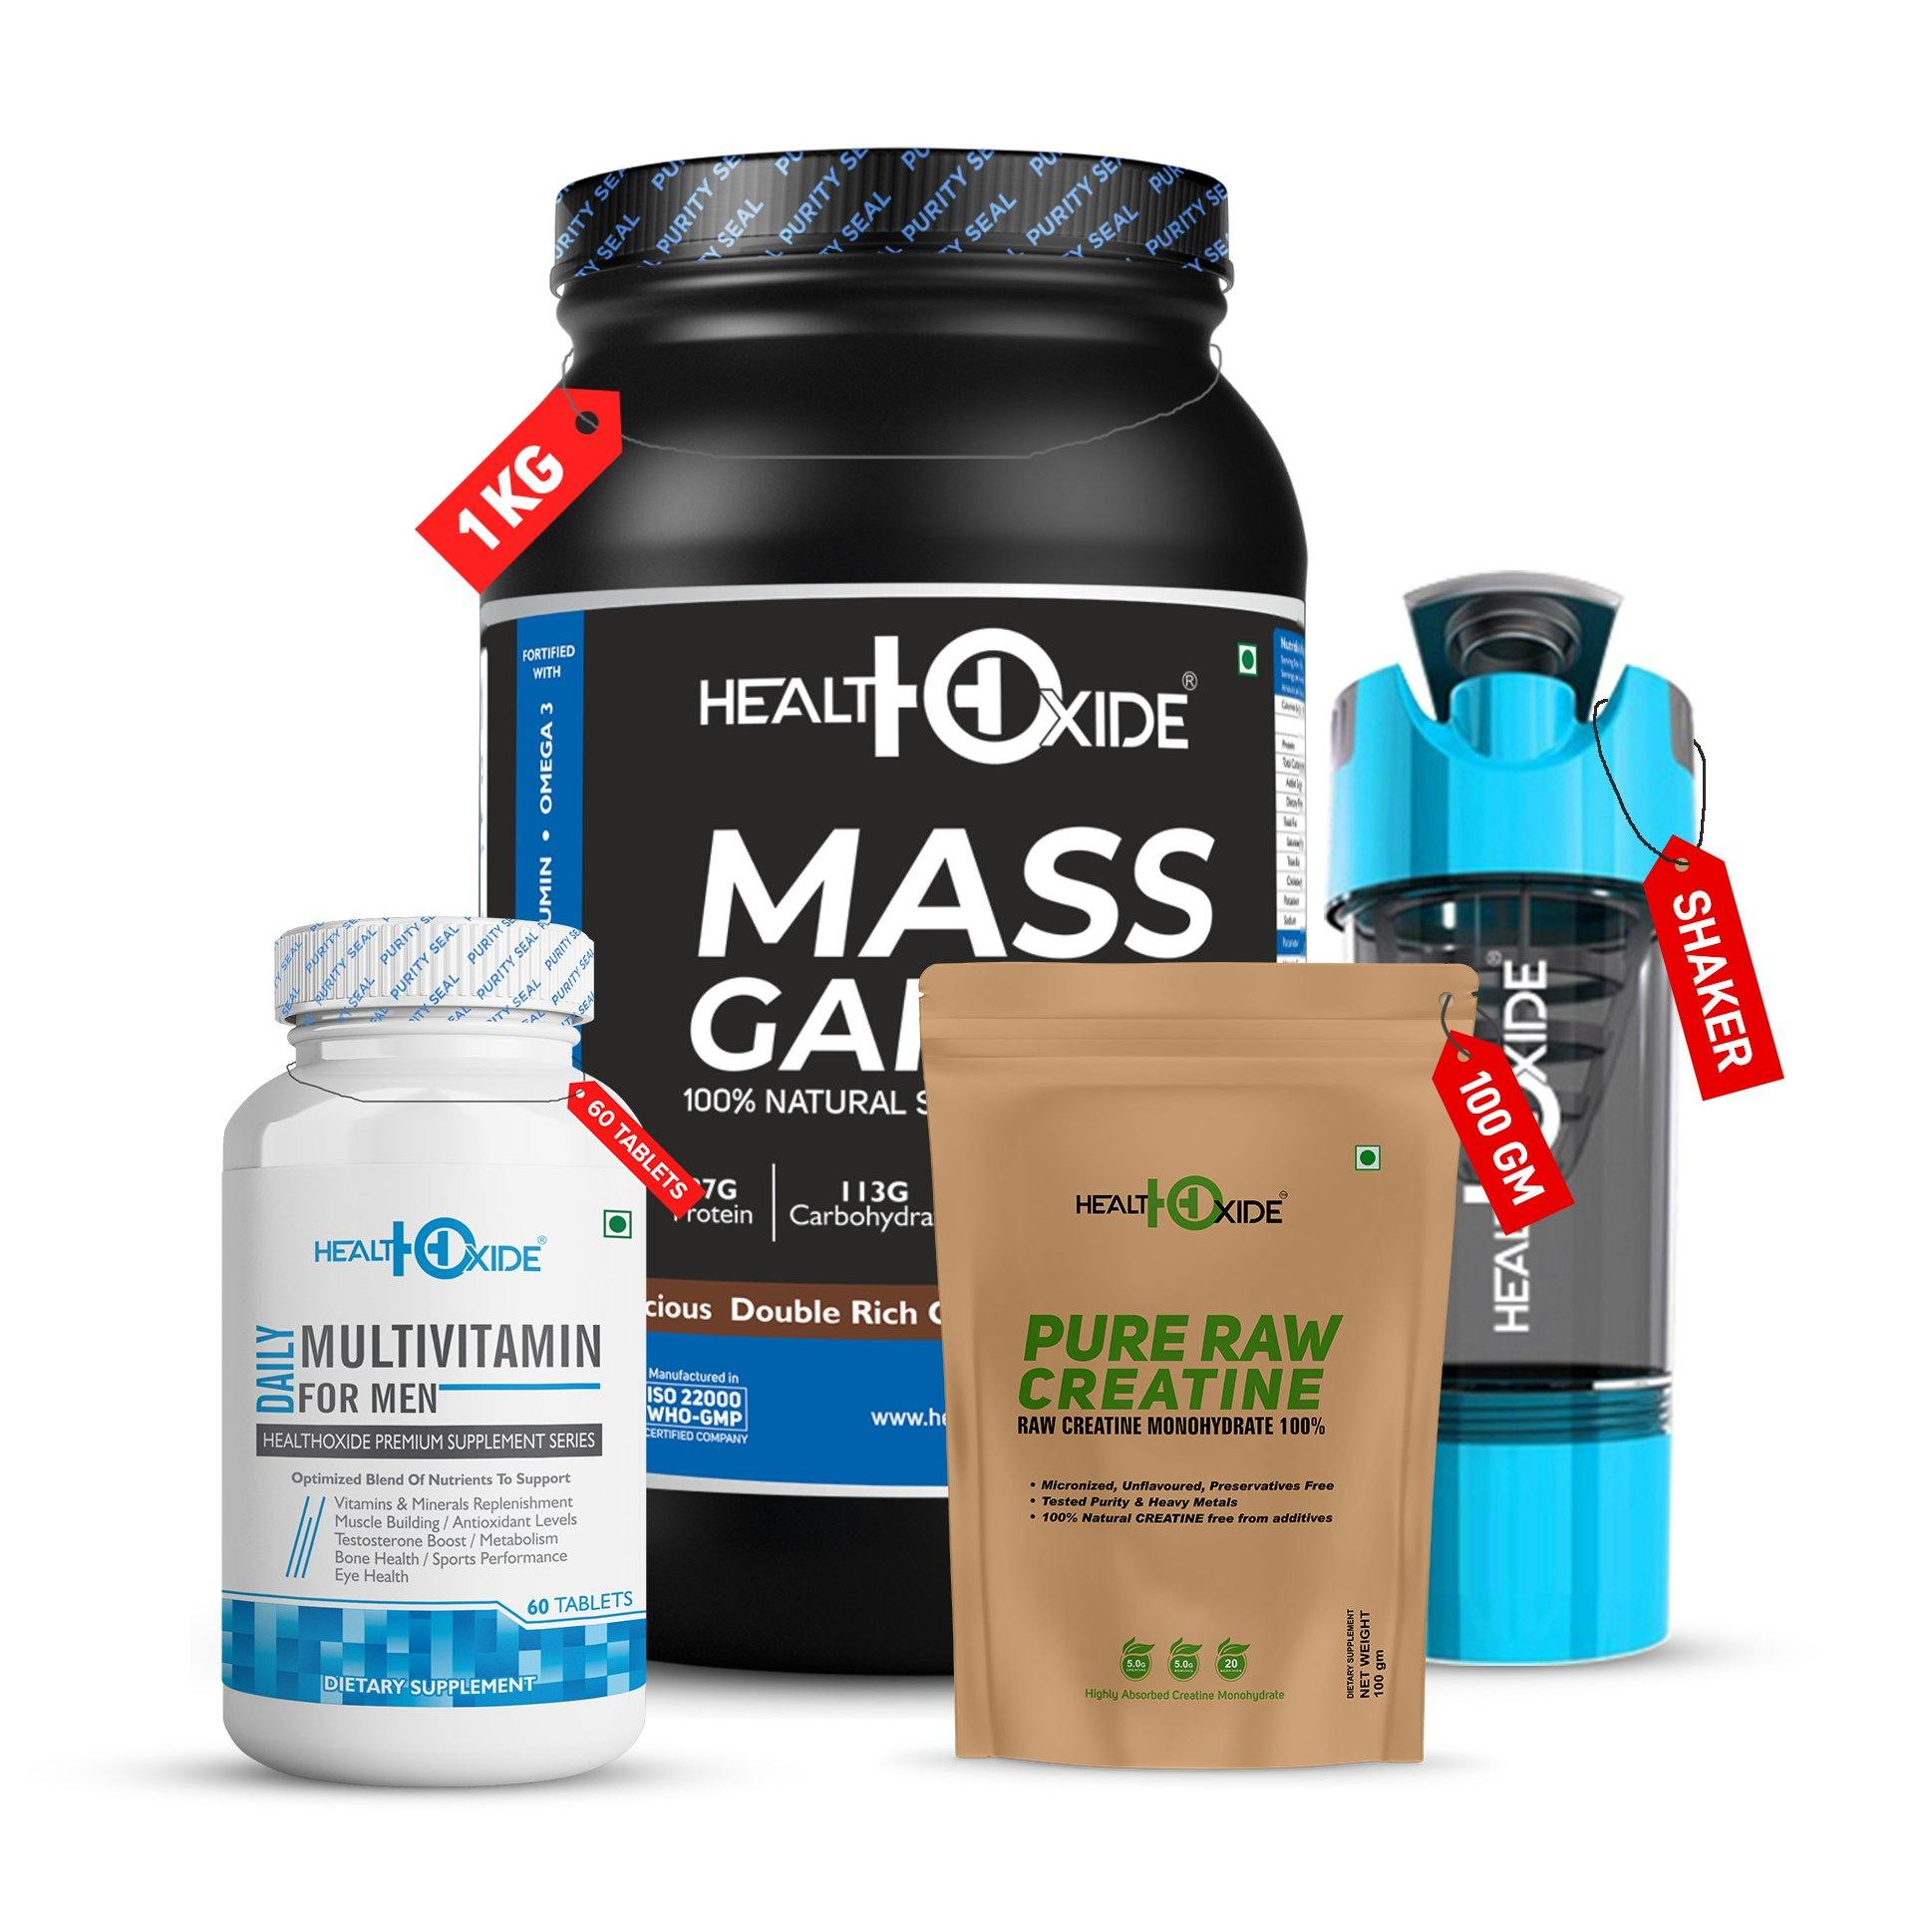 Mass Gainer Value Combo-Mass Gainer+ Multivitamin For Men + Pure Raw Creatine+ Shaker - HealthOxide